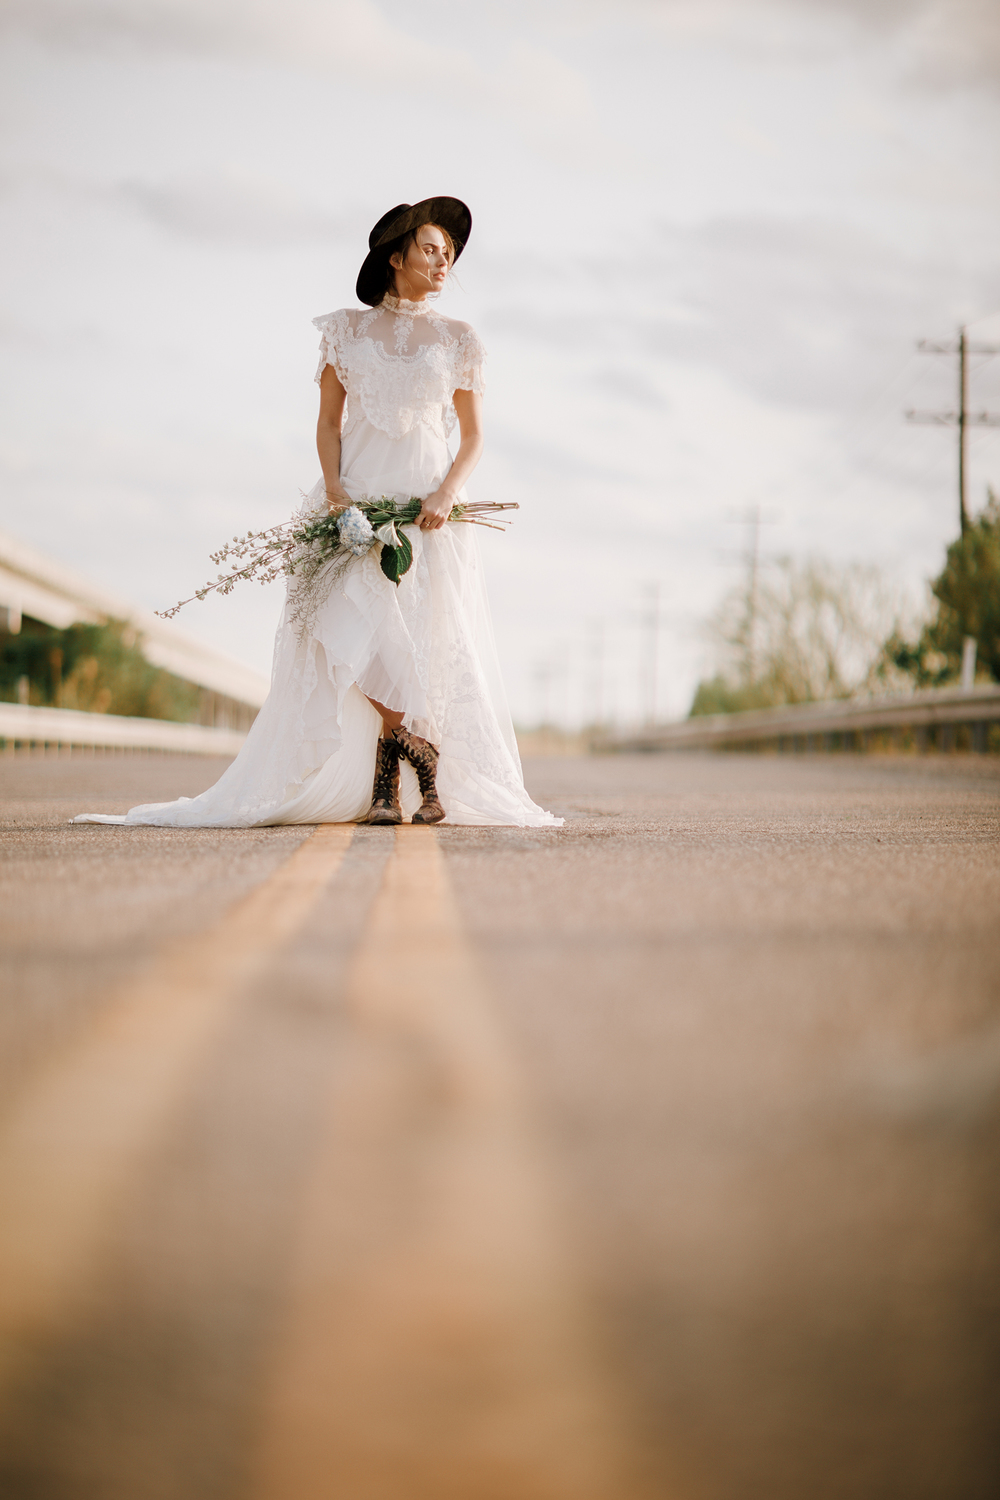 alaa-marzouk-alaamarzouk-photographer-boho-bridal-mcallen-wedding-bride-bohemian-austin-photographer-marzoukphotography-styled-rgvweddingphotographer-photographer-rio-grande-valley-42.jpg